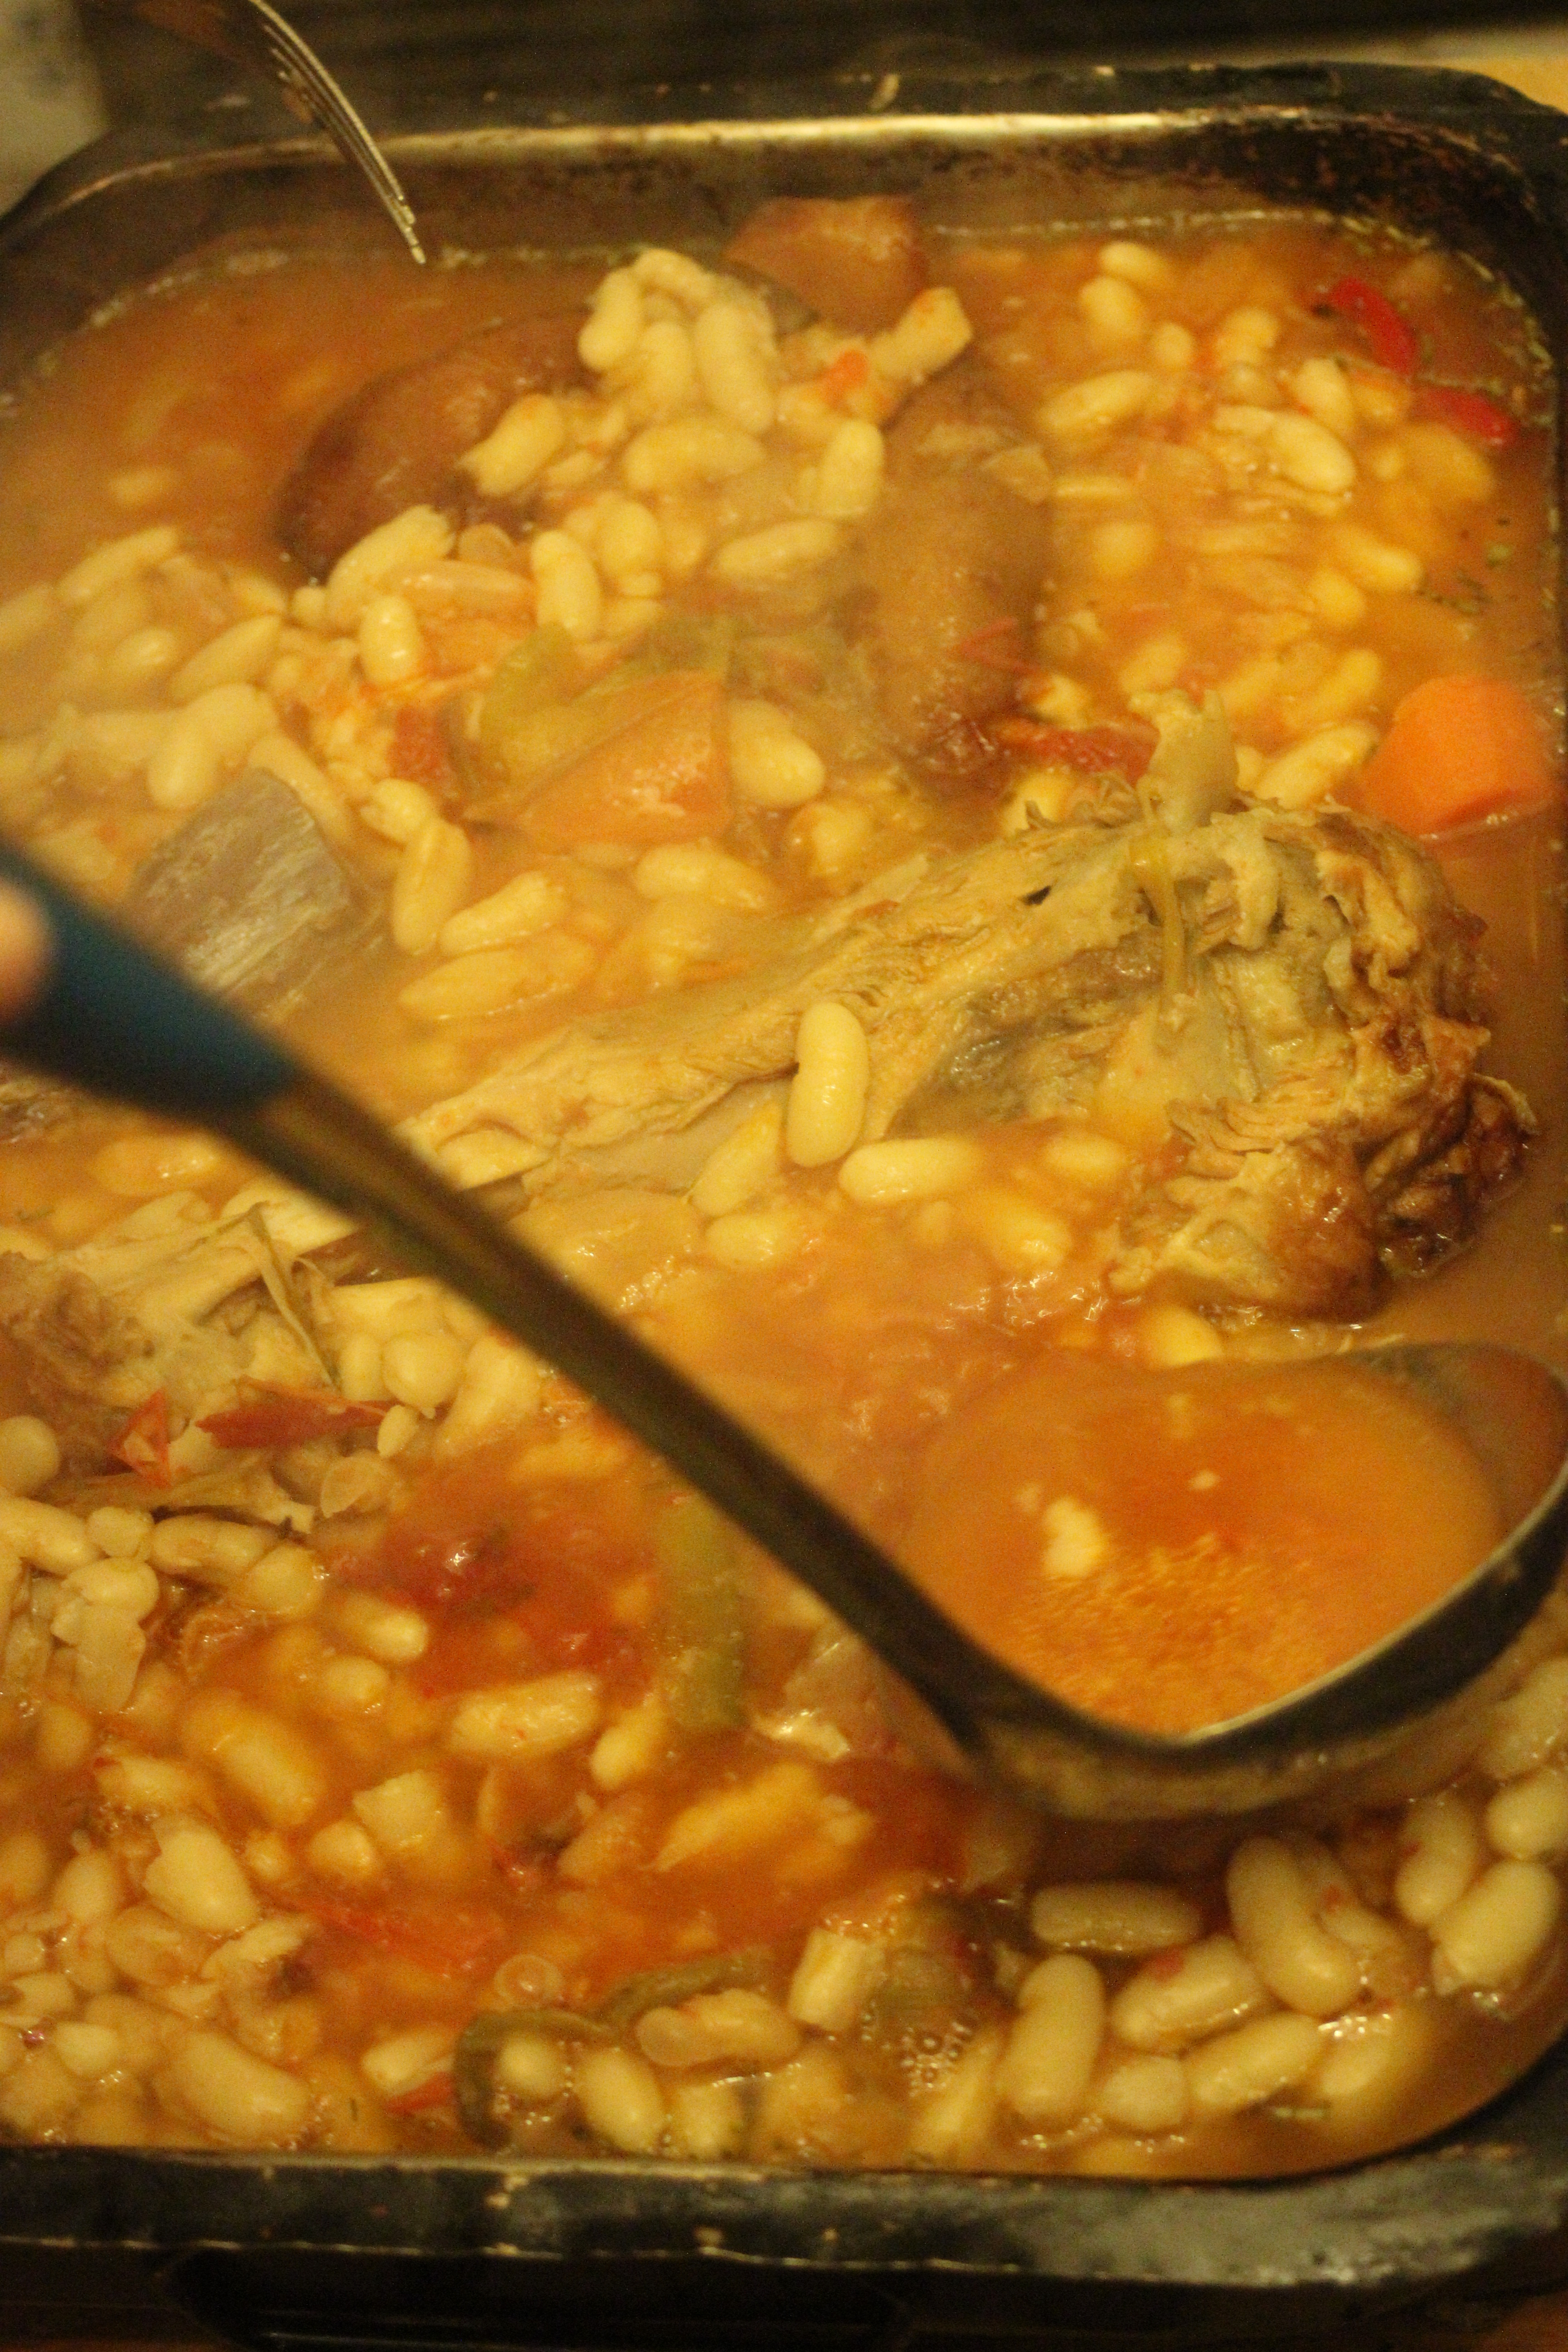 Picture of Method and Slow Cooking With a Fuelless Cooker or Hay Box